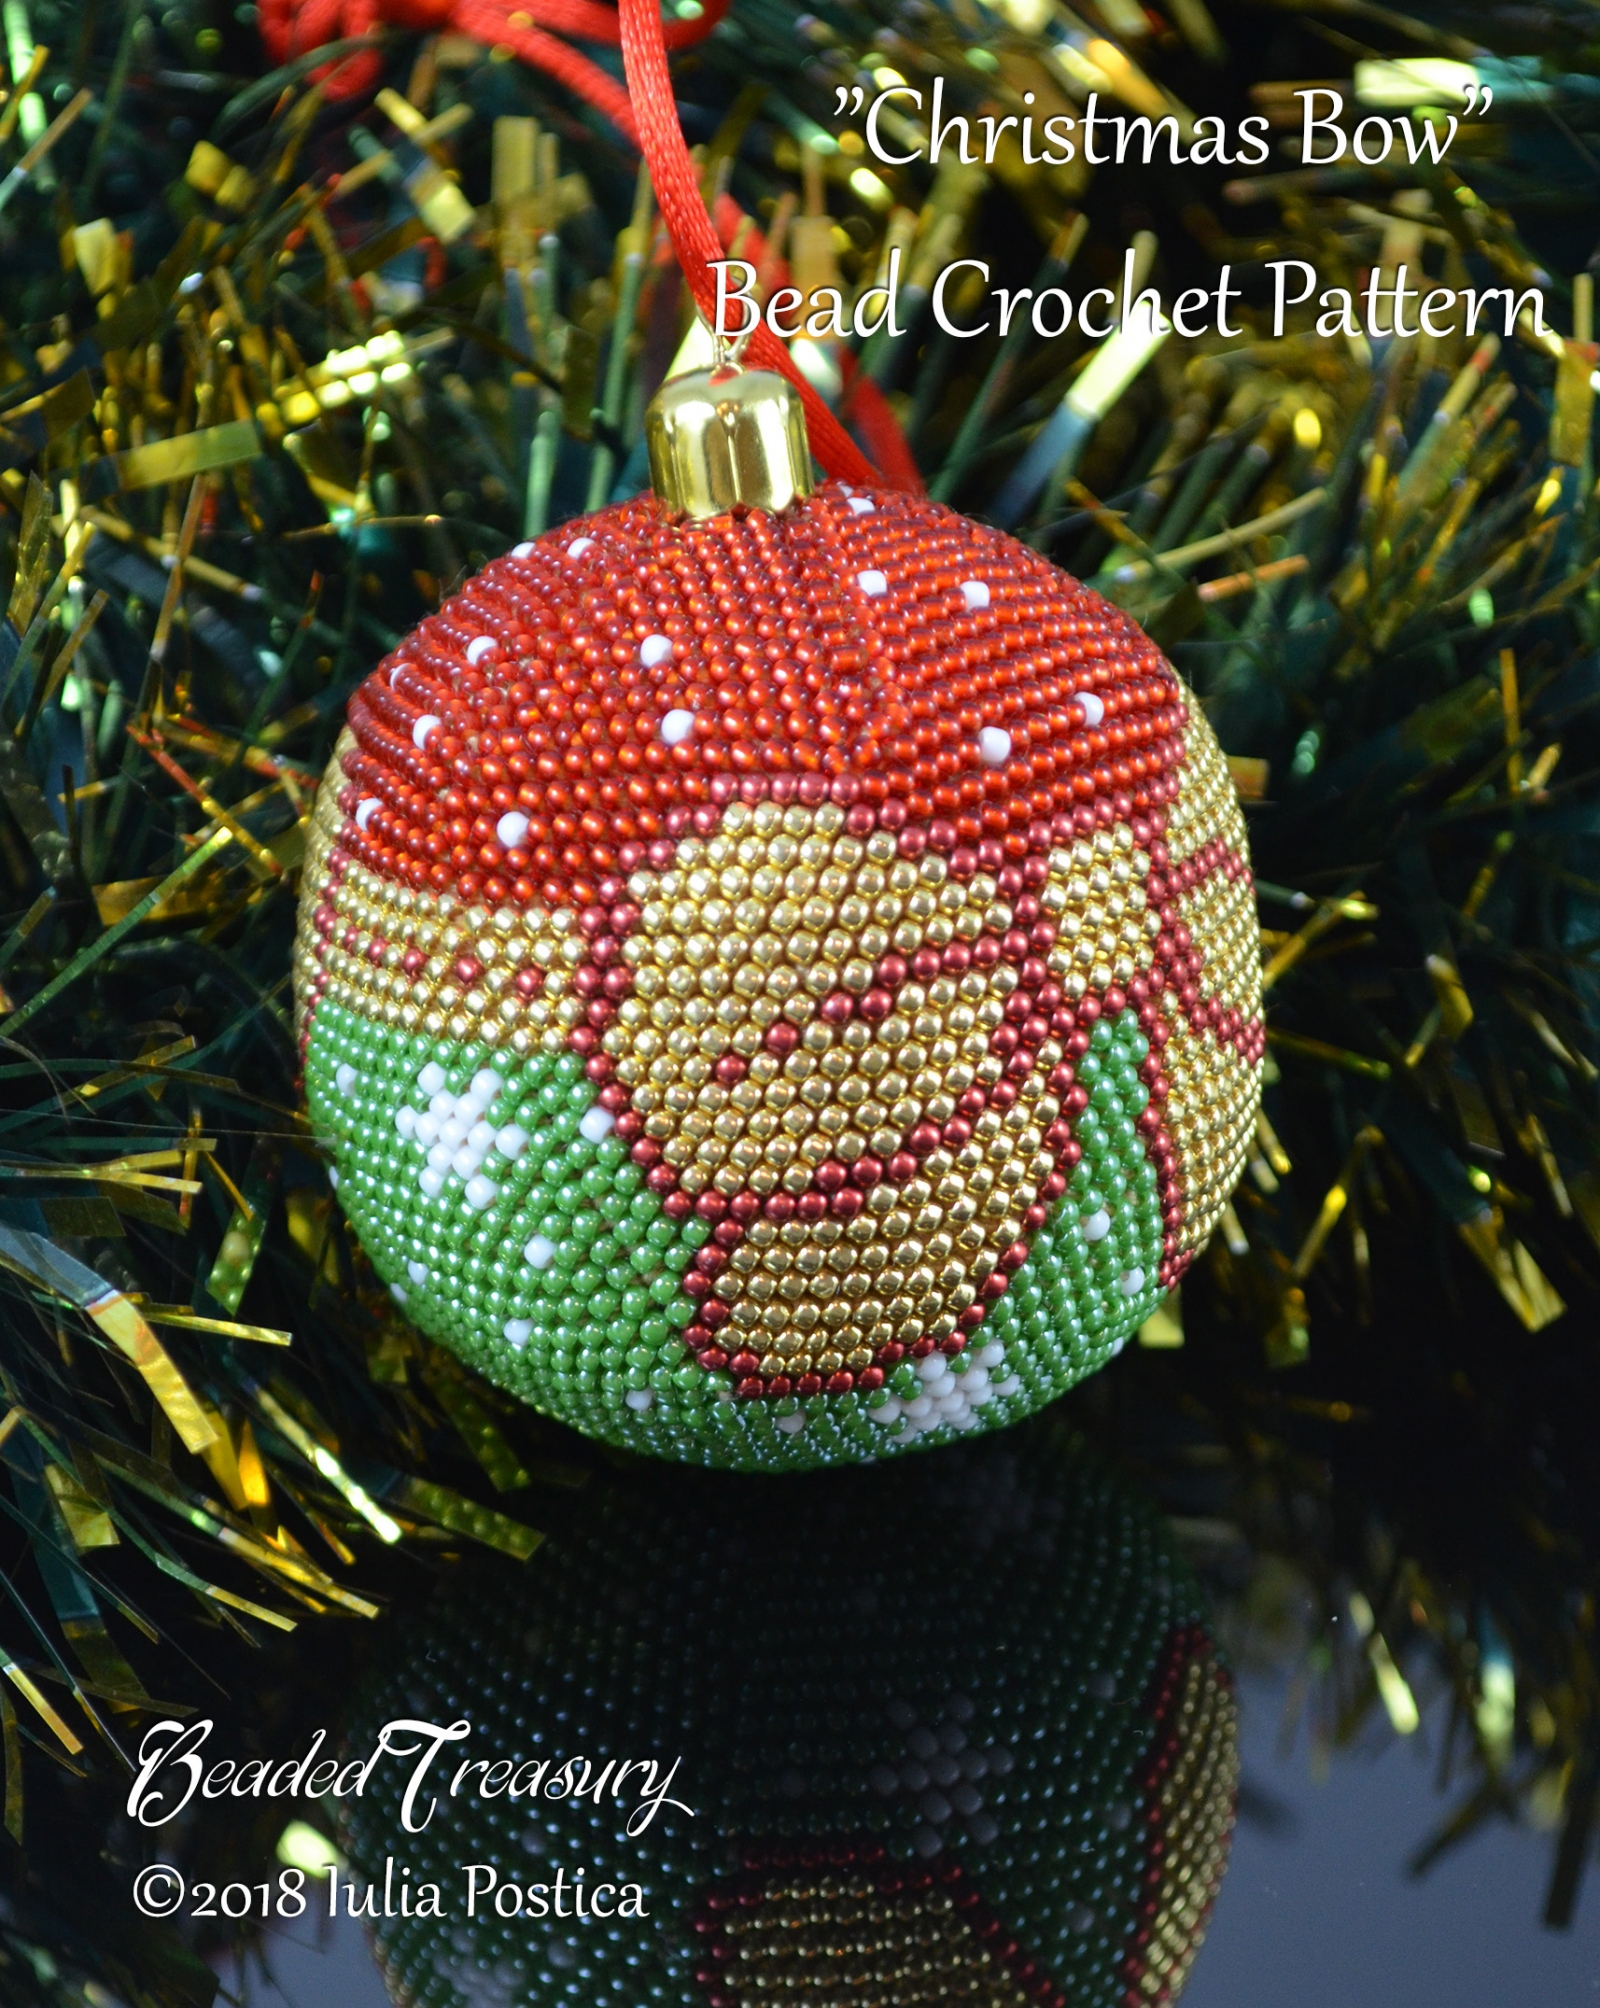 Beaded Christmas Ornaments Patterns.Christmas Bow Beaded Crochet Ball Ornament Pattern Made With Seed Beads Pdf Download